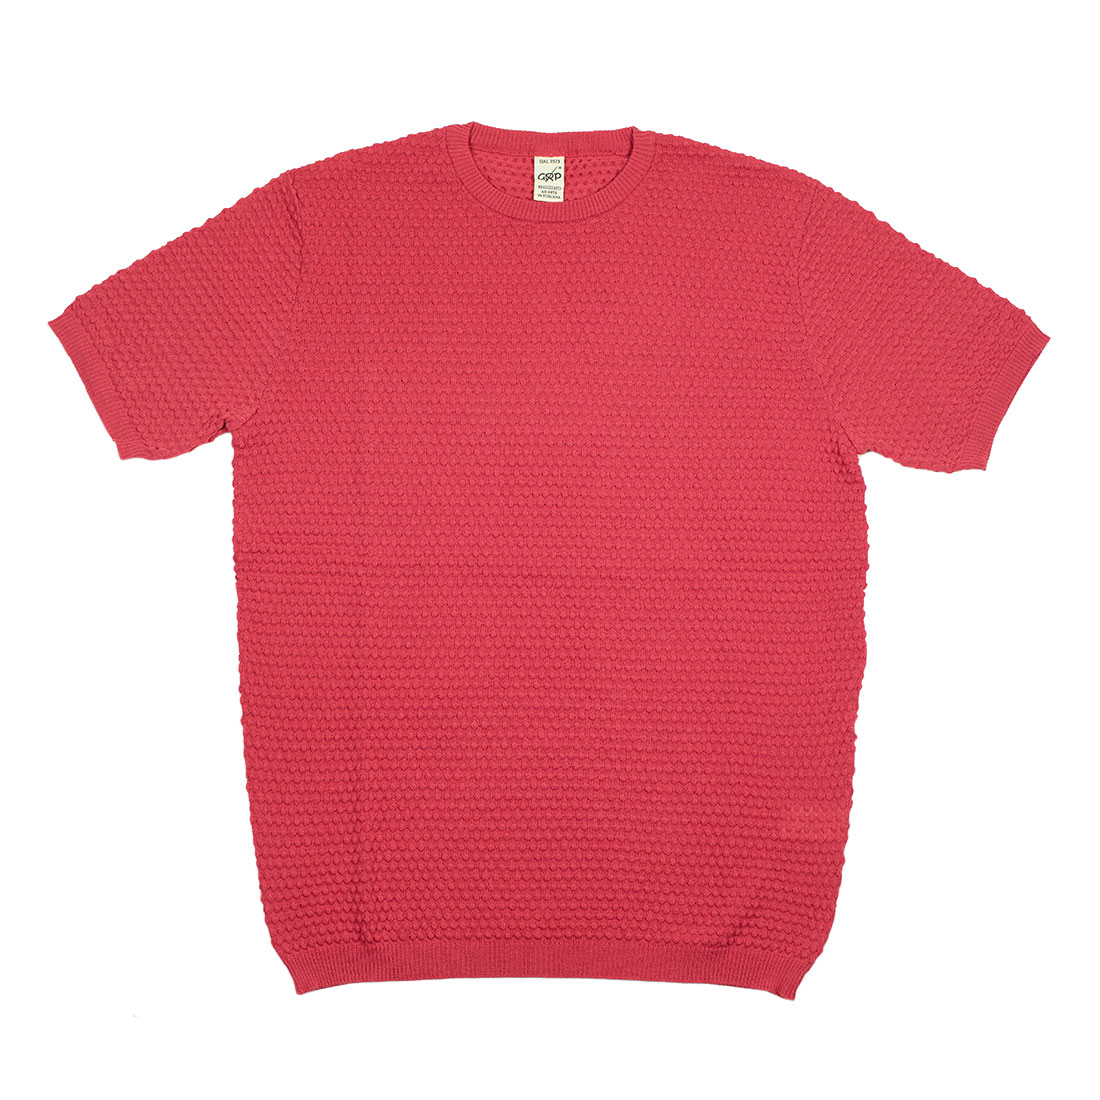 GRP Italy Spring Summer 2021 SS21 bubble stitch knit cotton tee (1).jpg